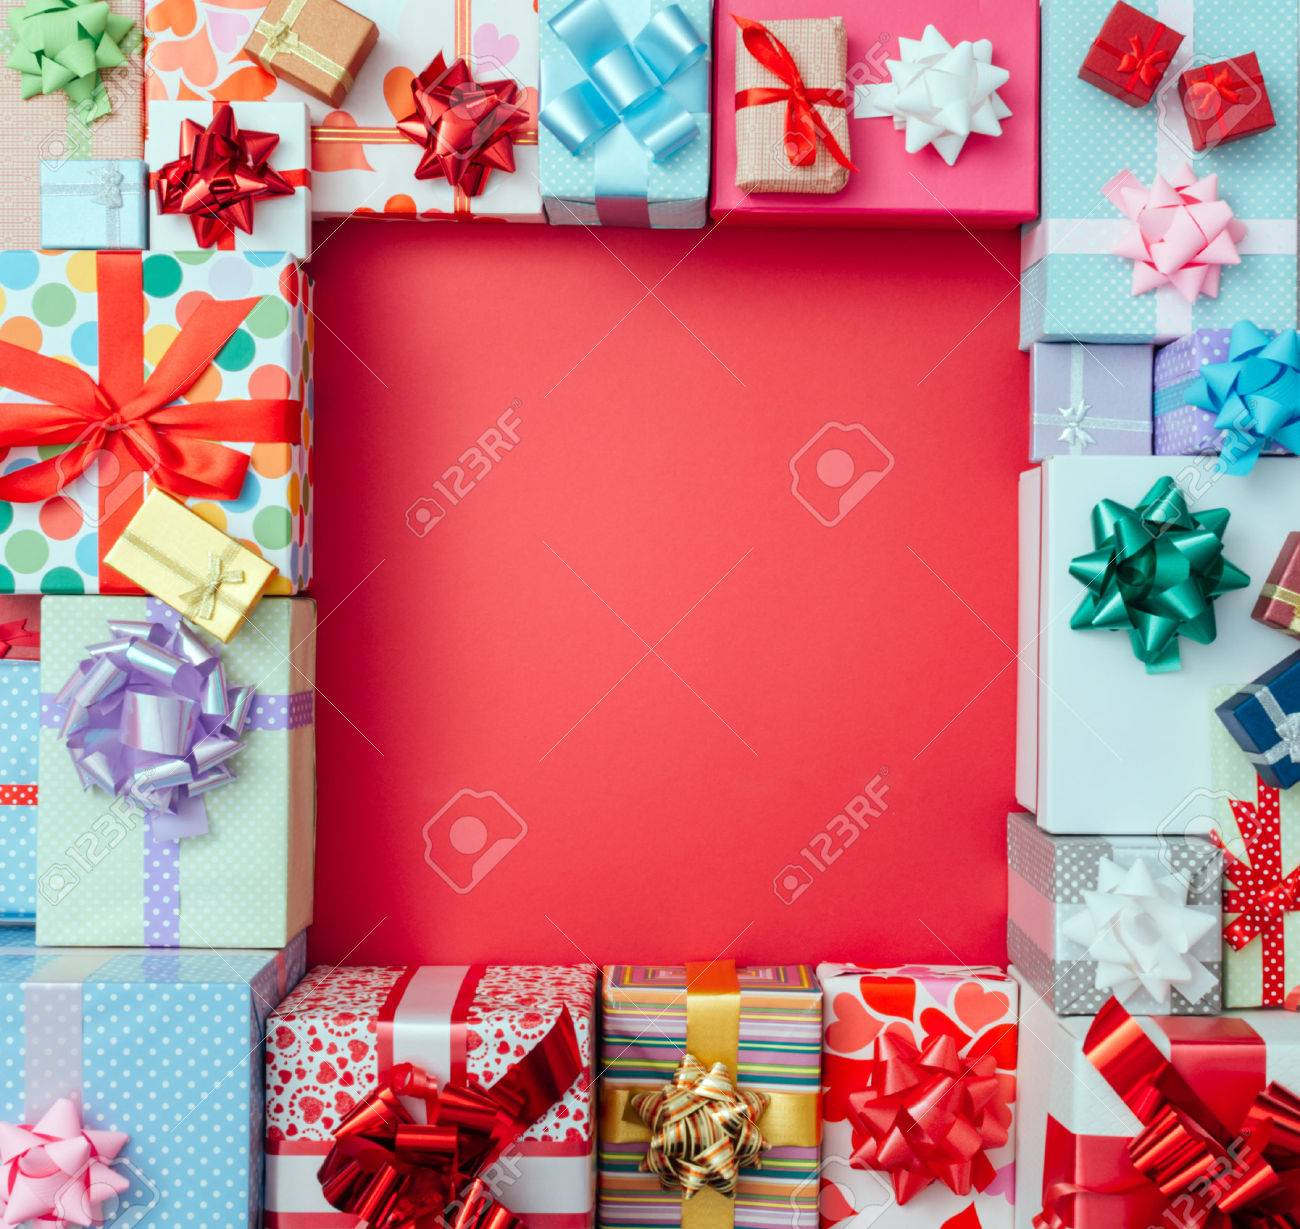 Colorful gift boxes framing a red blank copy space on a desktop, top view, Christmas and celebrations concept Stock Photo - 48492522